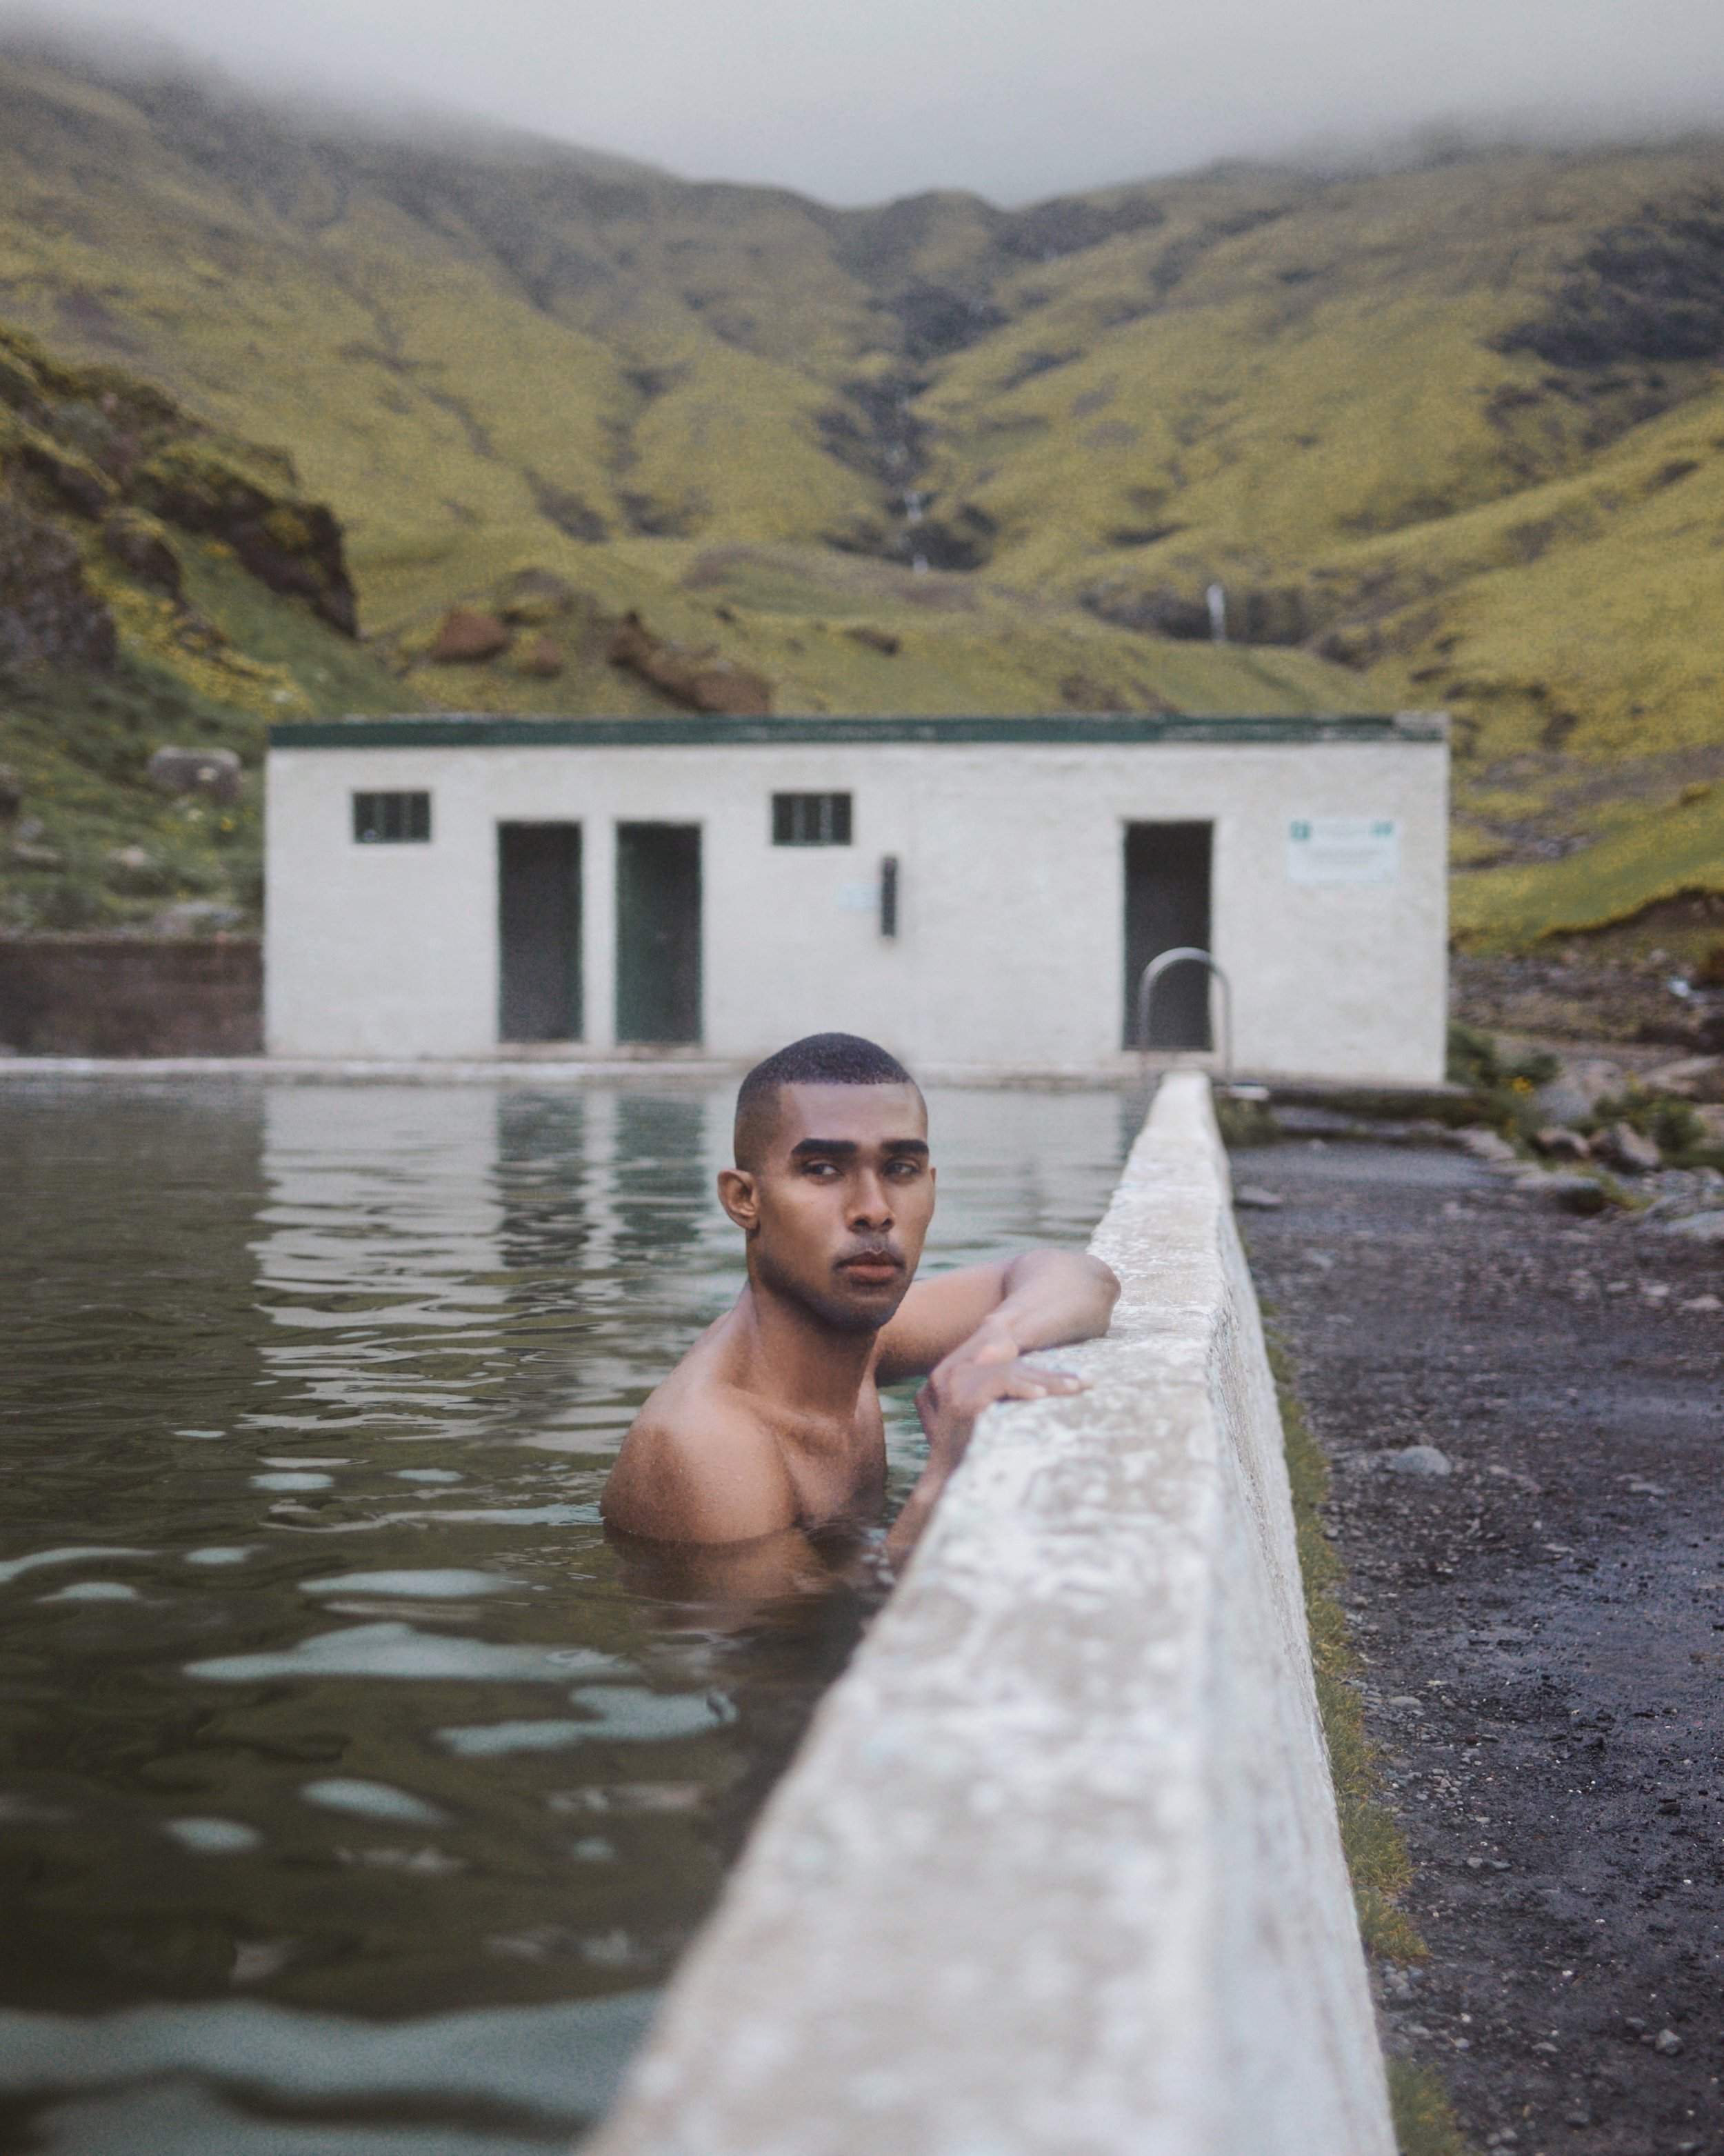 The-Look-Principle-Top-Ten-Most-Instagramable-Places-In-Iceland-15.jpg